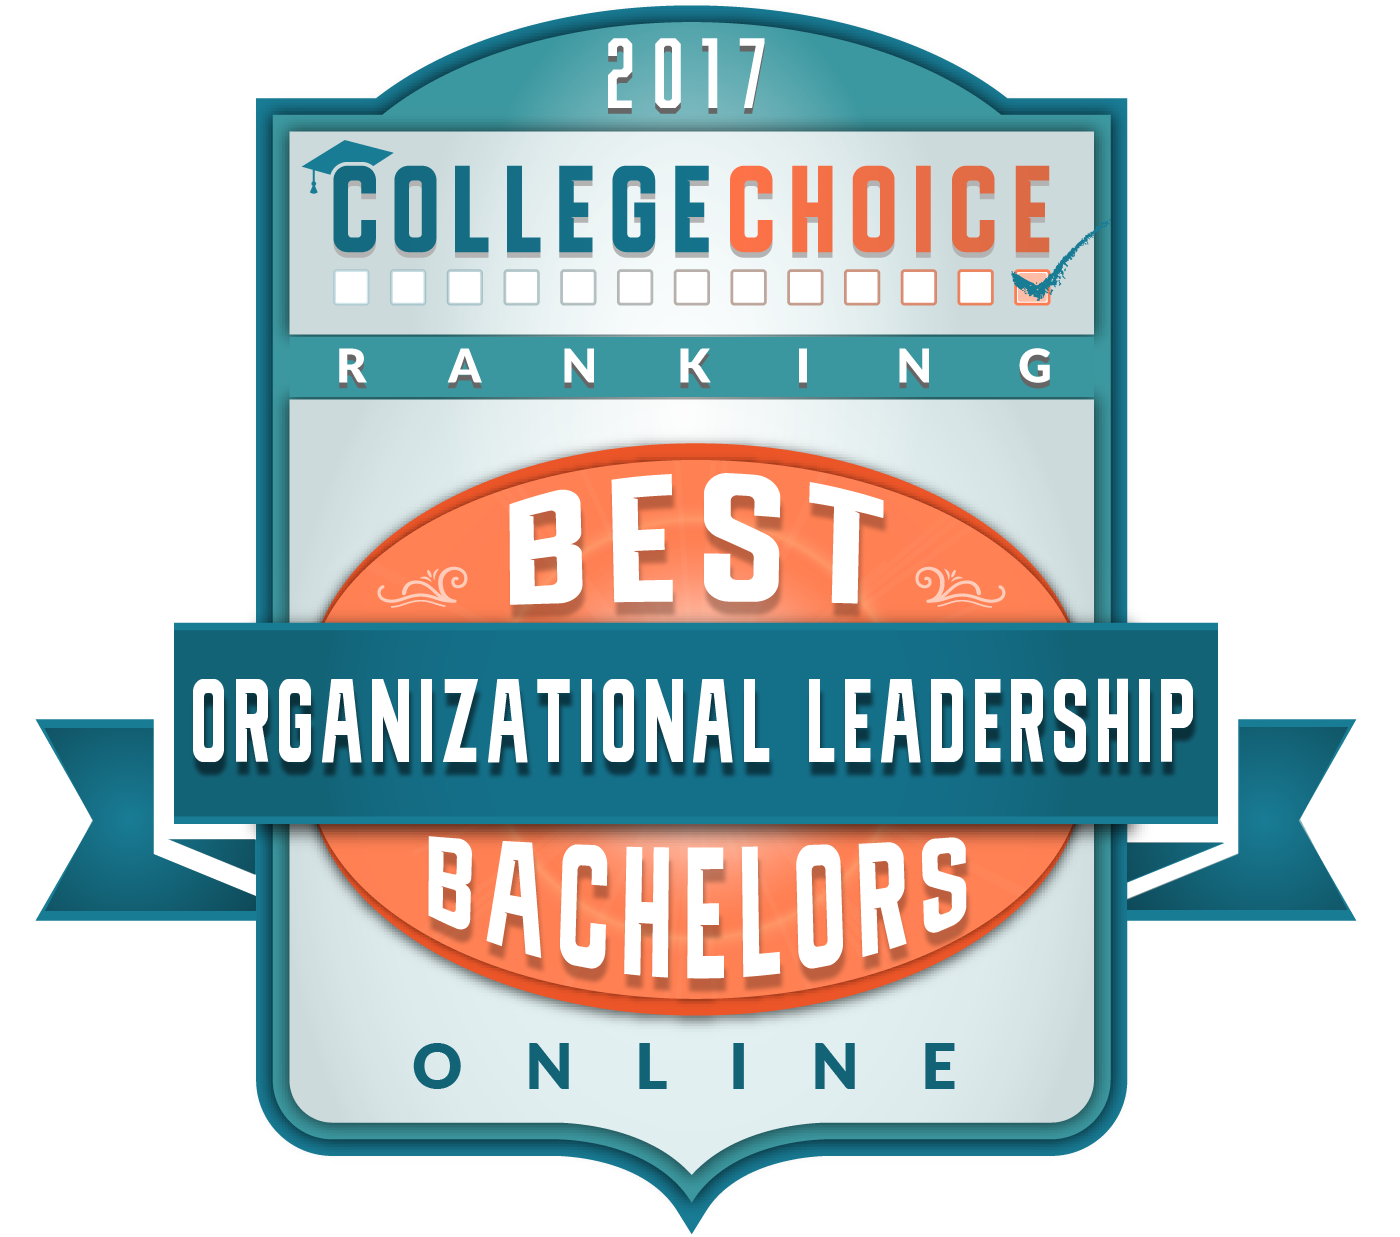 Best Online - Organizational Leadership